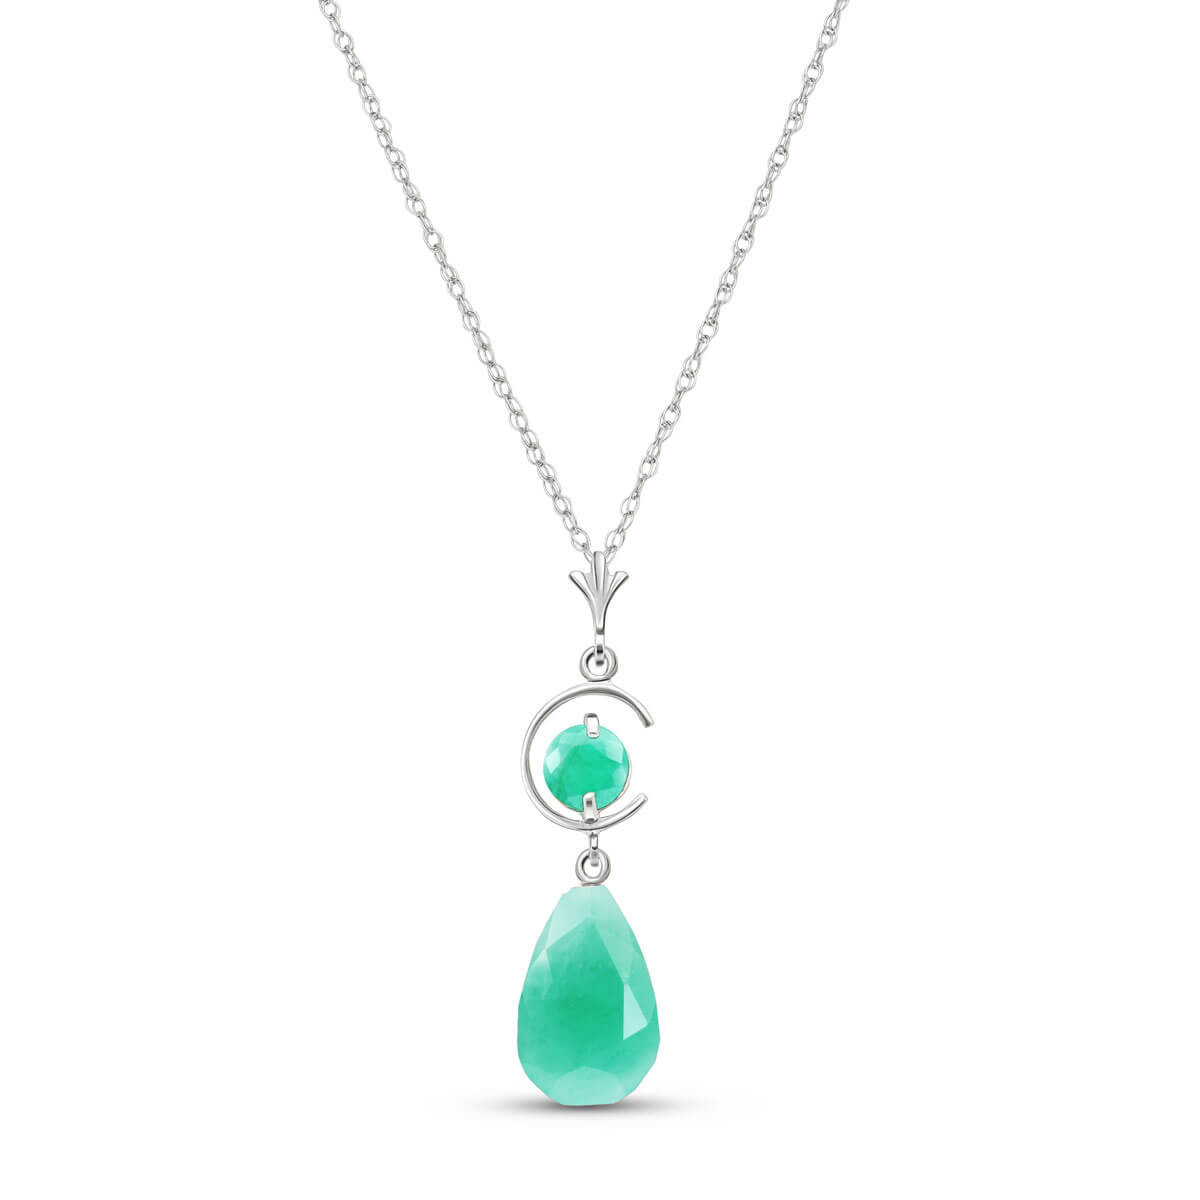 Briolette Cut Emerald Pendant Necklace 9.3 ctw in 9ct White Gold